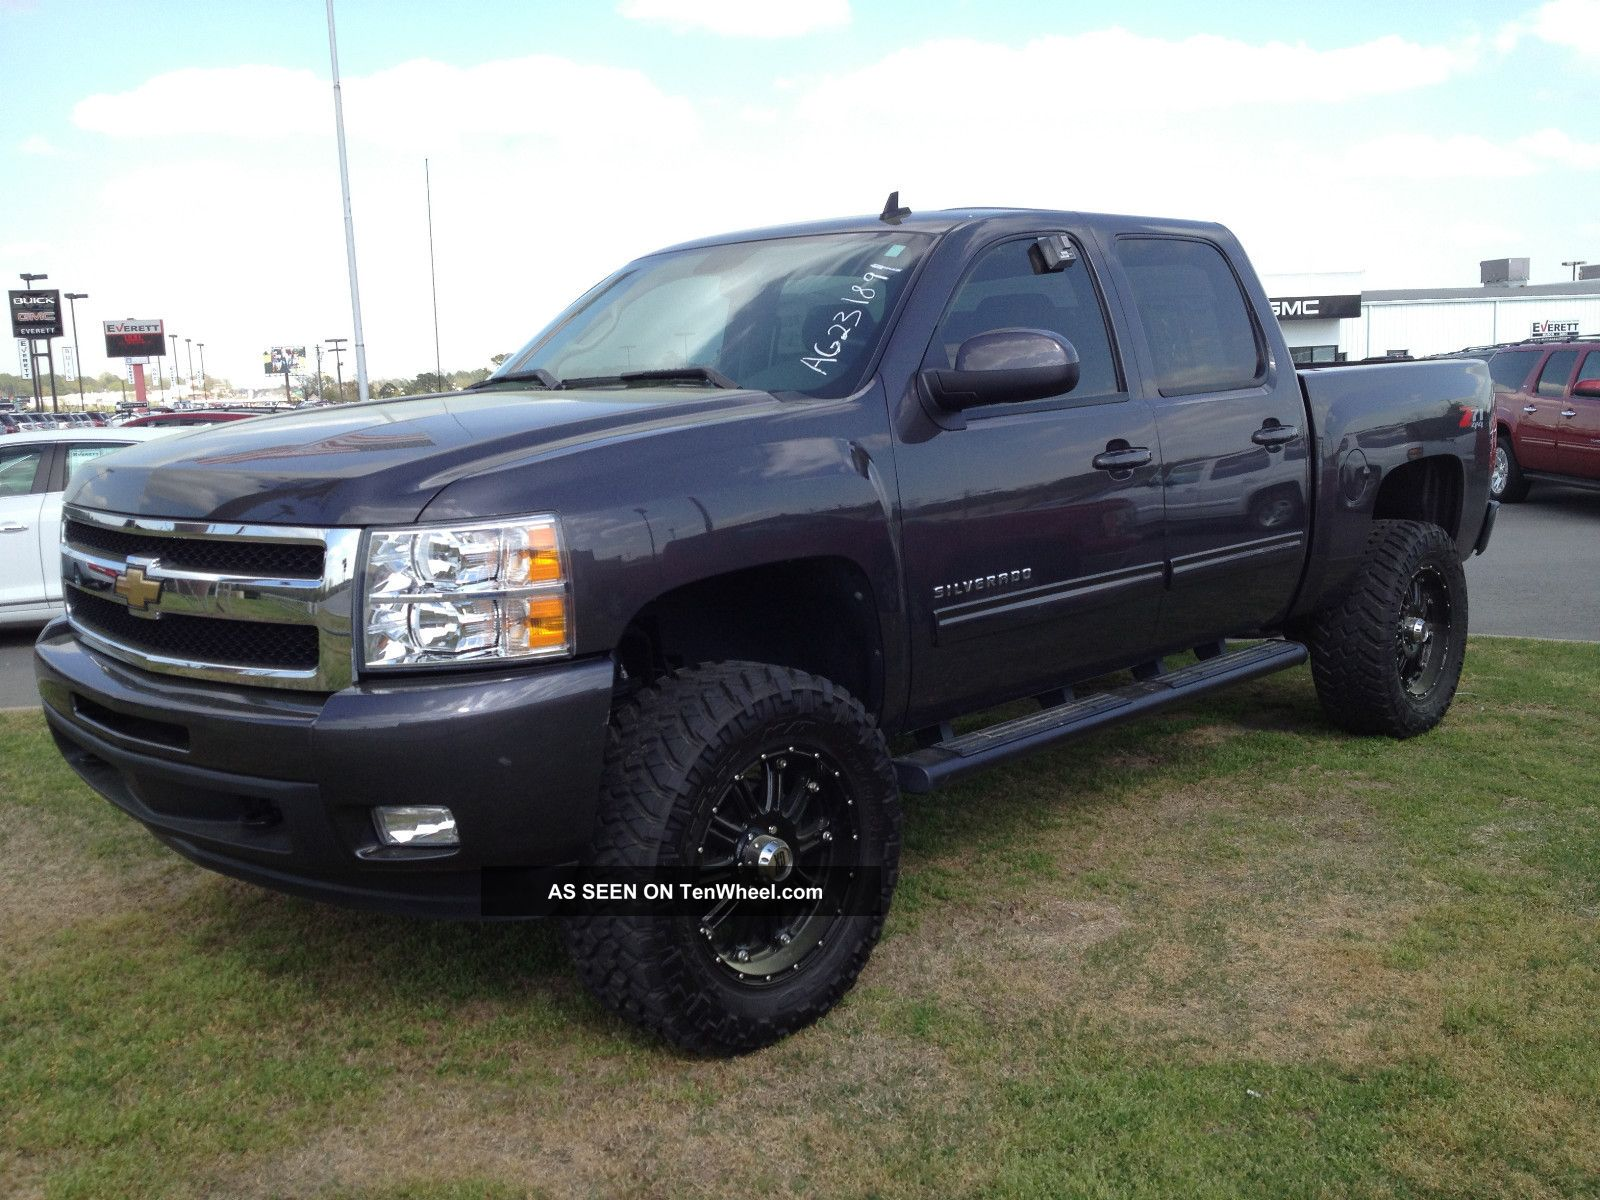 2010 Chevrolet Silverado 1500 Ltz Crew Cab Pickup 4 - Door 5.  3l Silverado 1500 photo